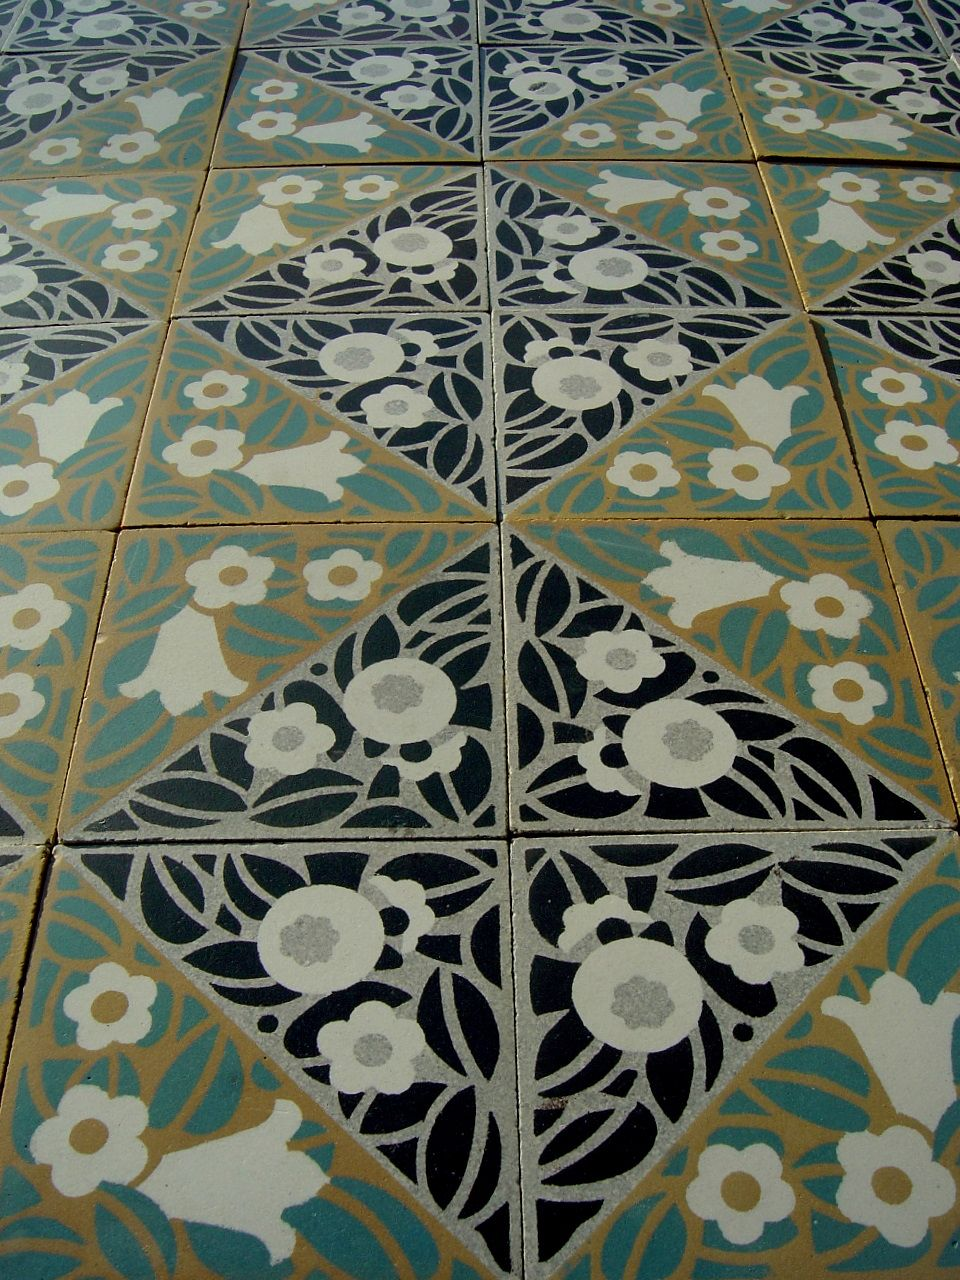 40 Wonderful Pictures And Ideas Of 1920s Bathroom Tile